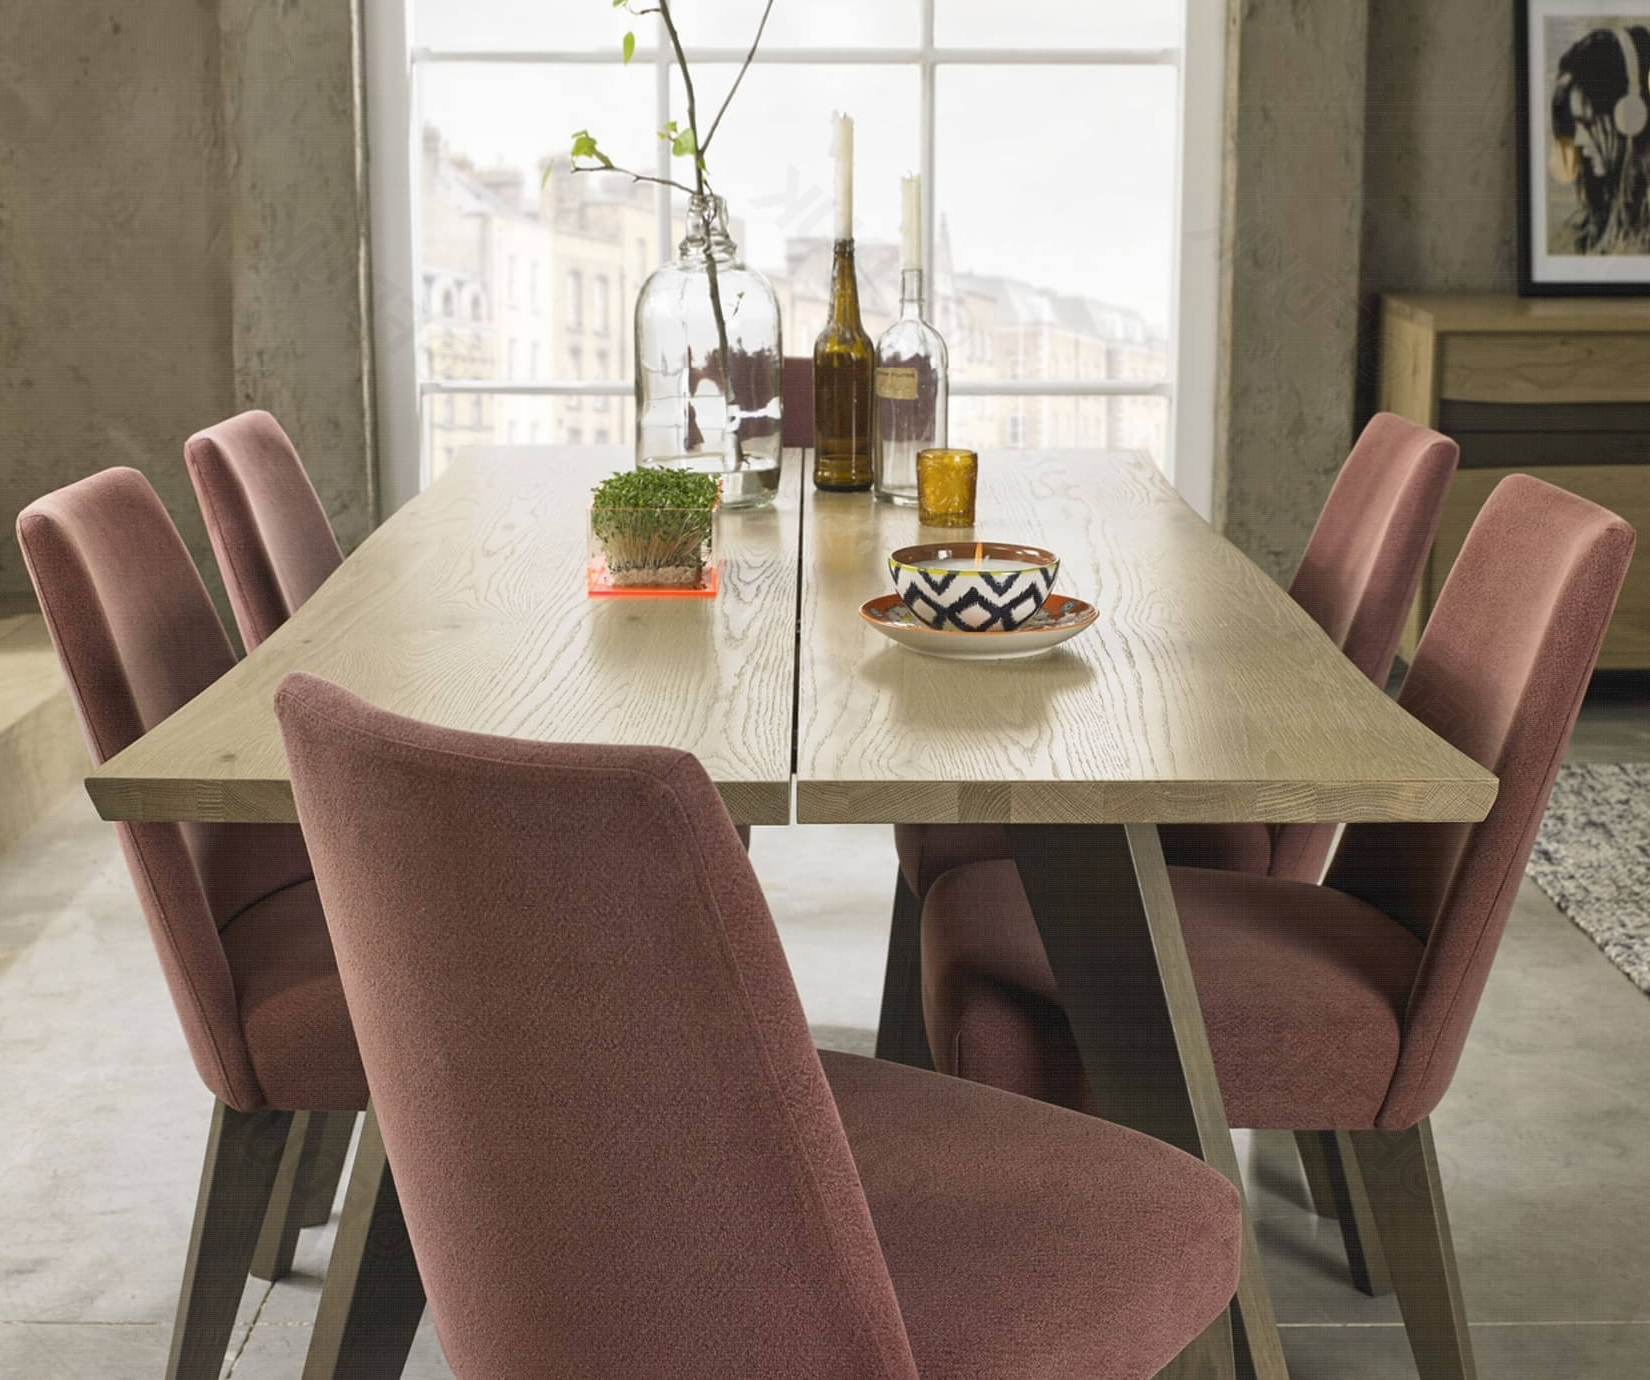 2017 Buy Bentley Designs Cadell 6 Seater Aged Oak Dining Set Online – Fduk For Oak 6 Seater Dining Tables (View 3 of 25)